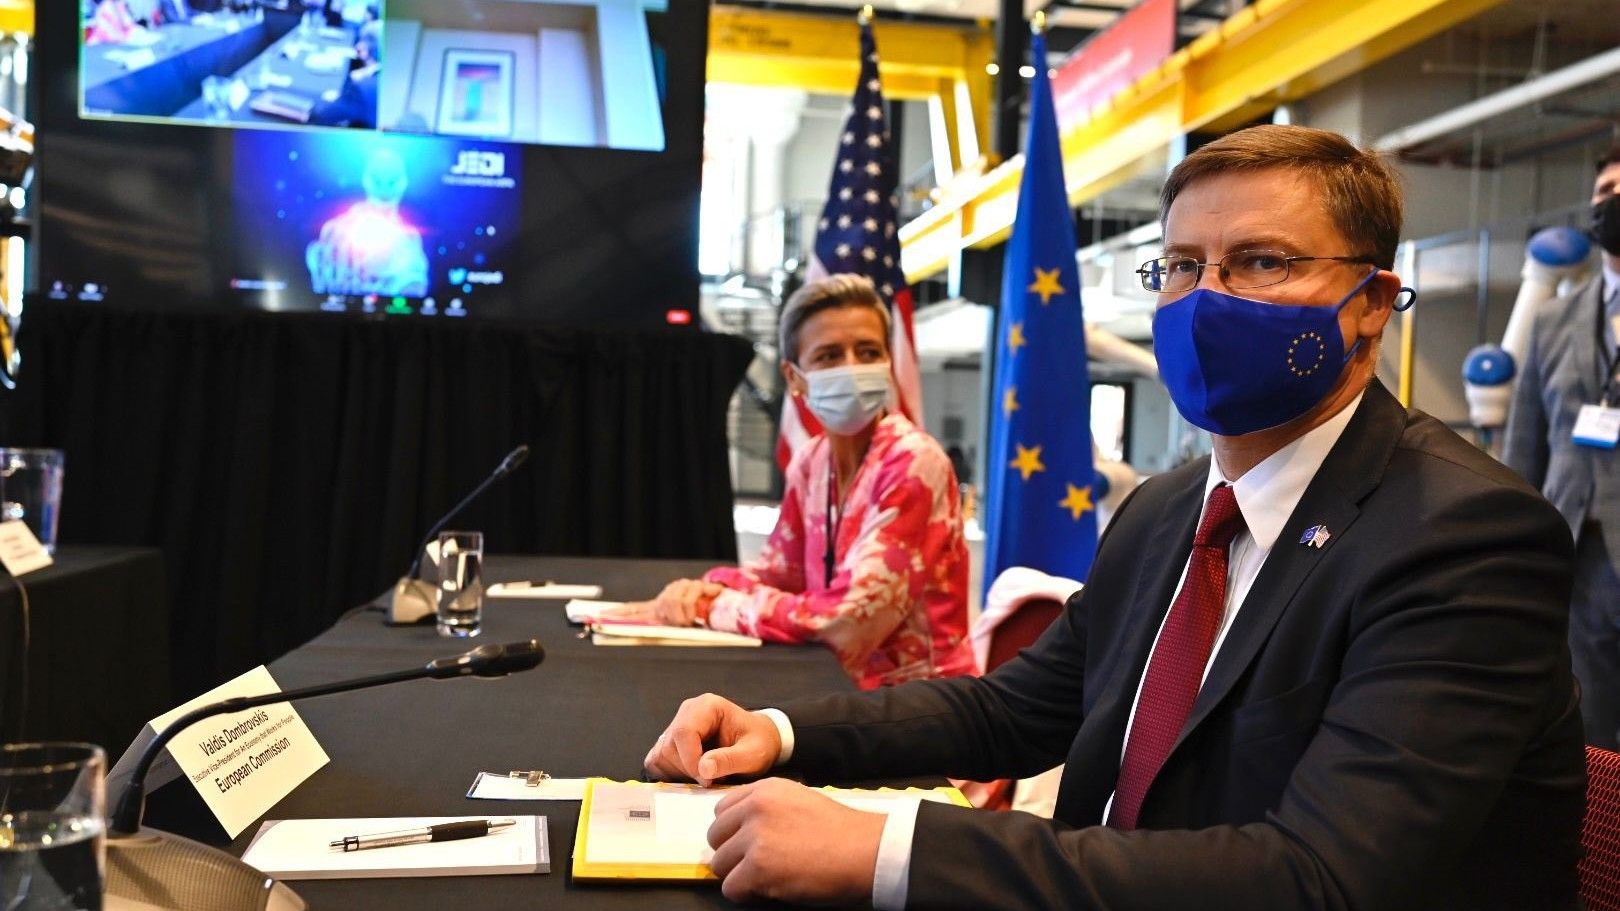 European Commissioner for Trade Valdis Dombrovskis and Executive Vice President of the European Commission for A Europe Fit for the Digital Age Margrethe Vestager share views on critical trade & tech issues with stakeholders in Pittsburgh.